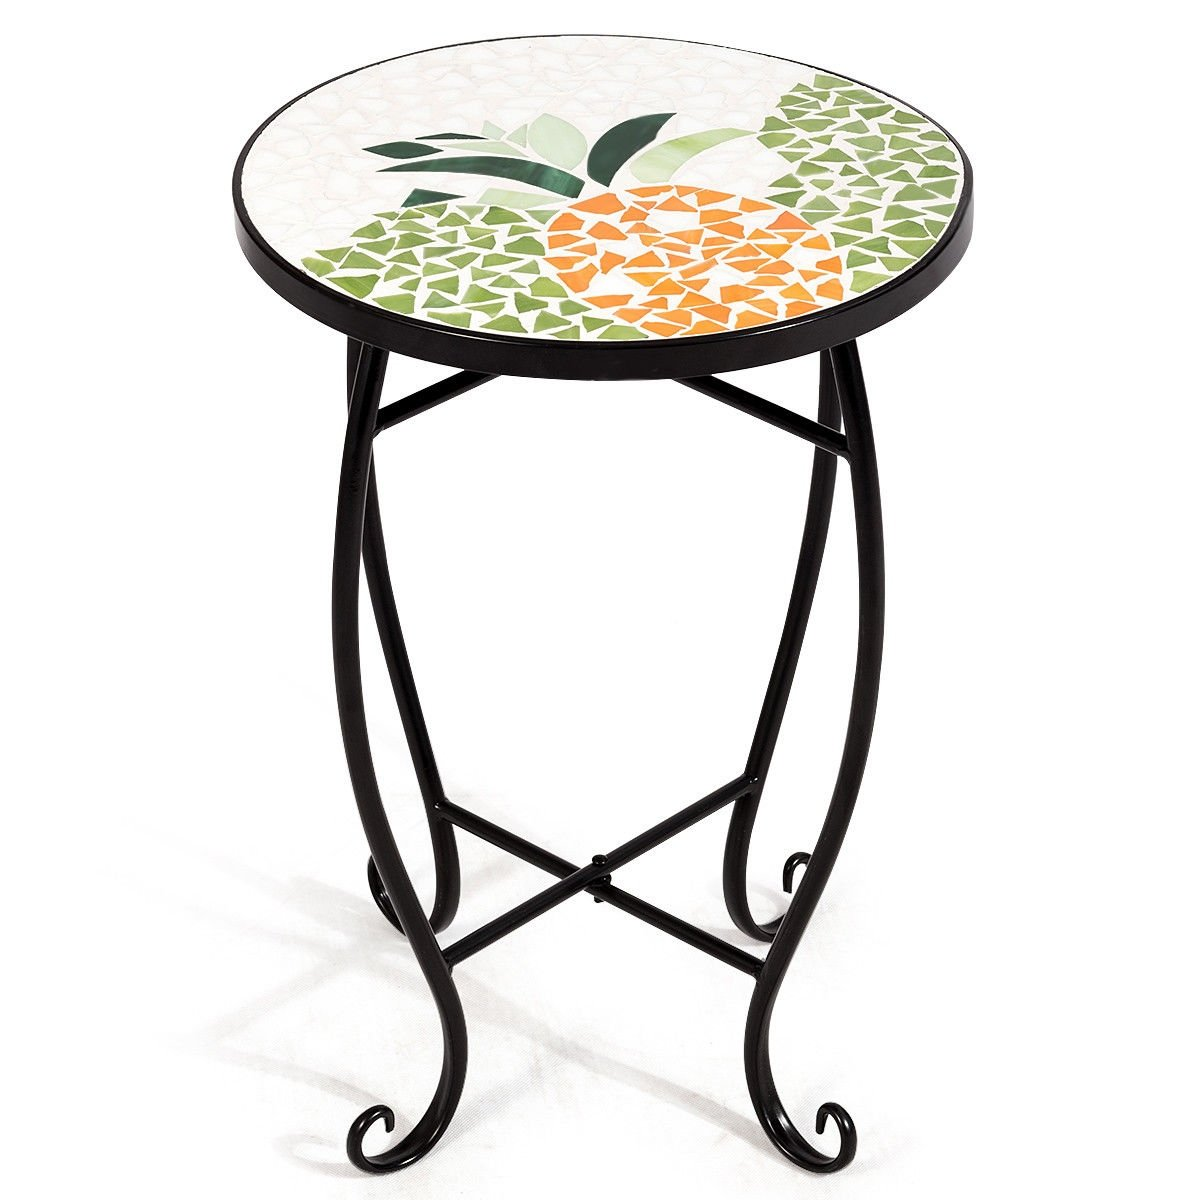 way pineapple outdoor indoor accent table plant stand scheme garden steel multicolor drummer stool adjustable height office furniture portland alexa home automation wine cabinet